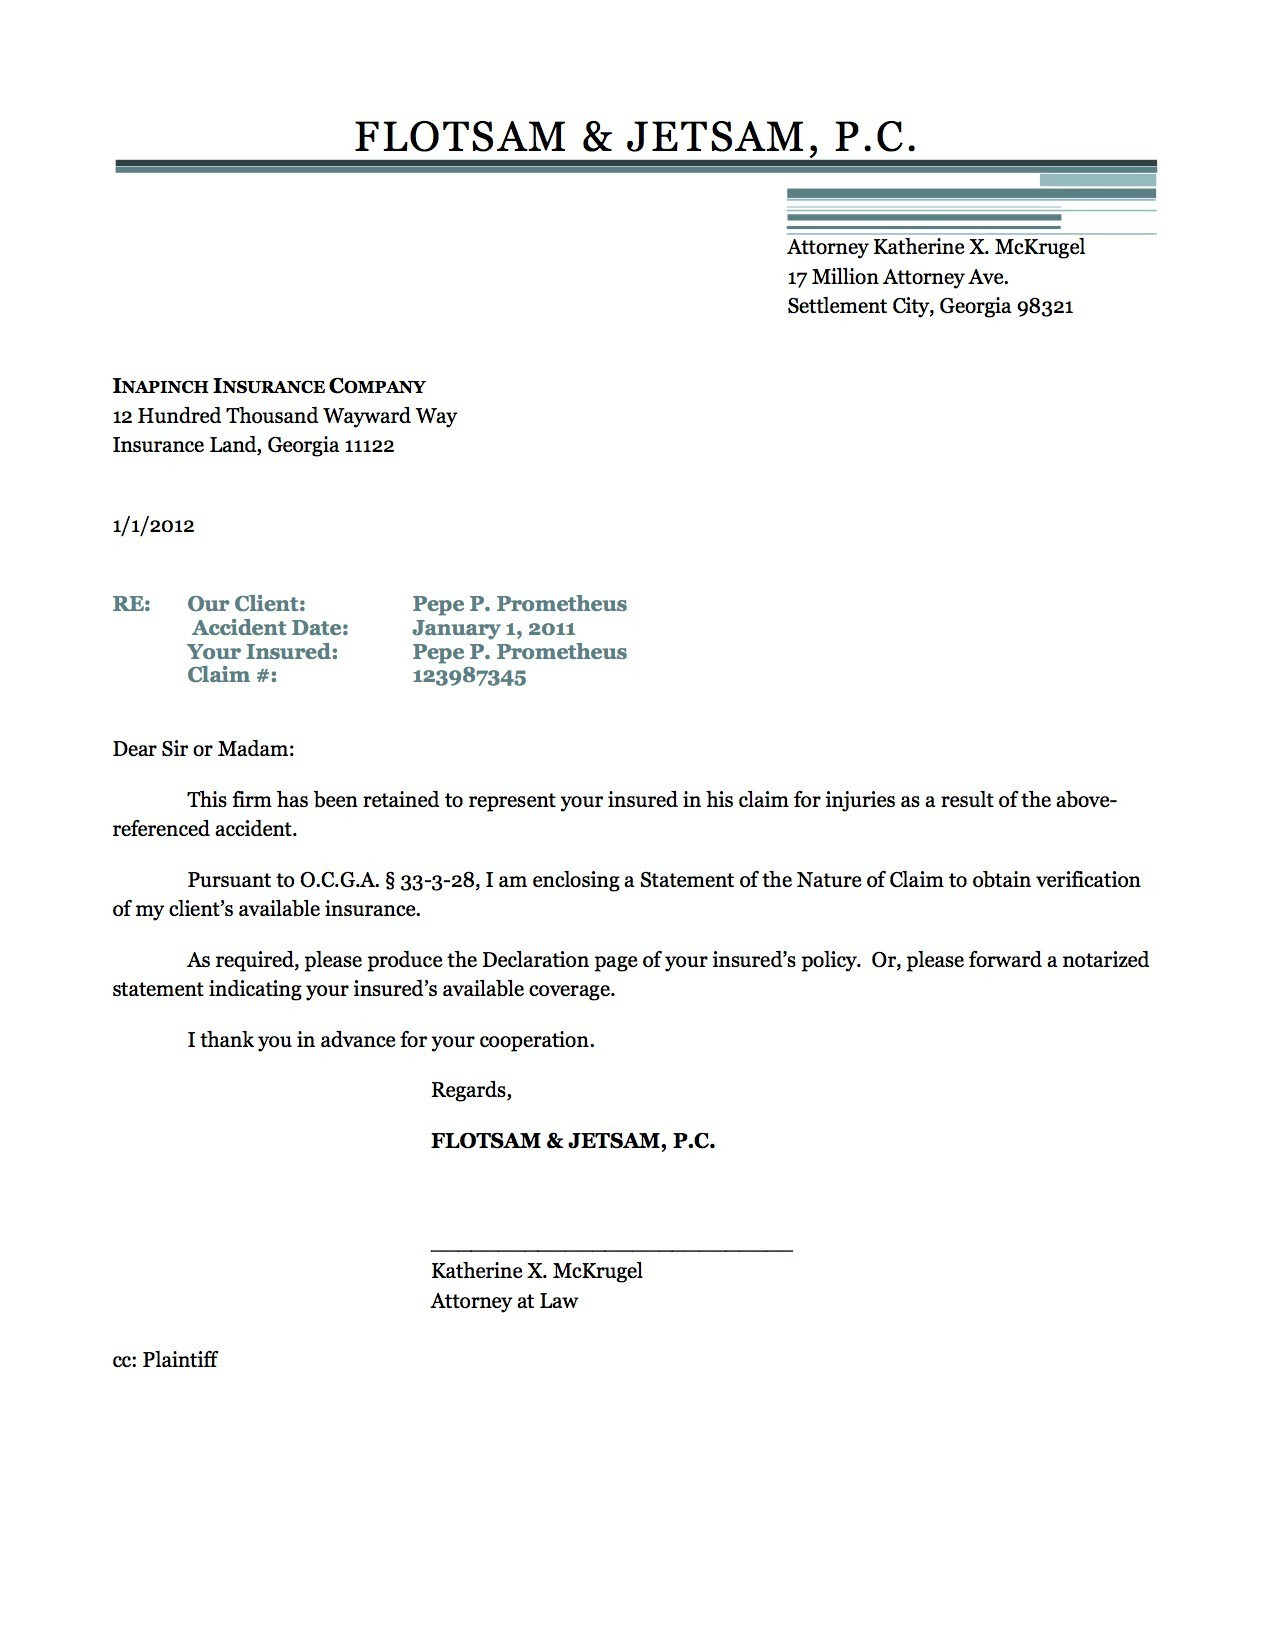 sample insurance request letter  Certificate Of Insurance Request Letter Template Examples | Letter ...